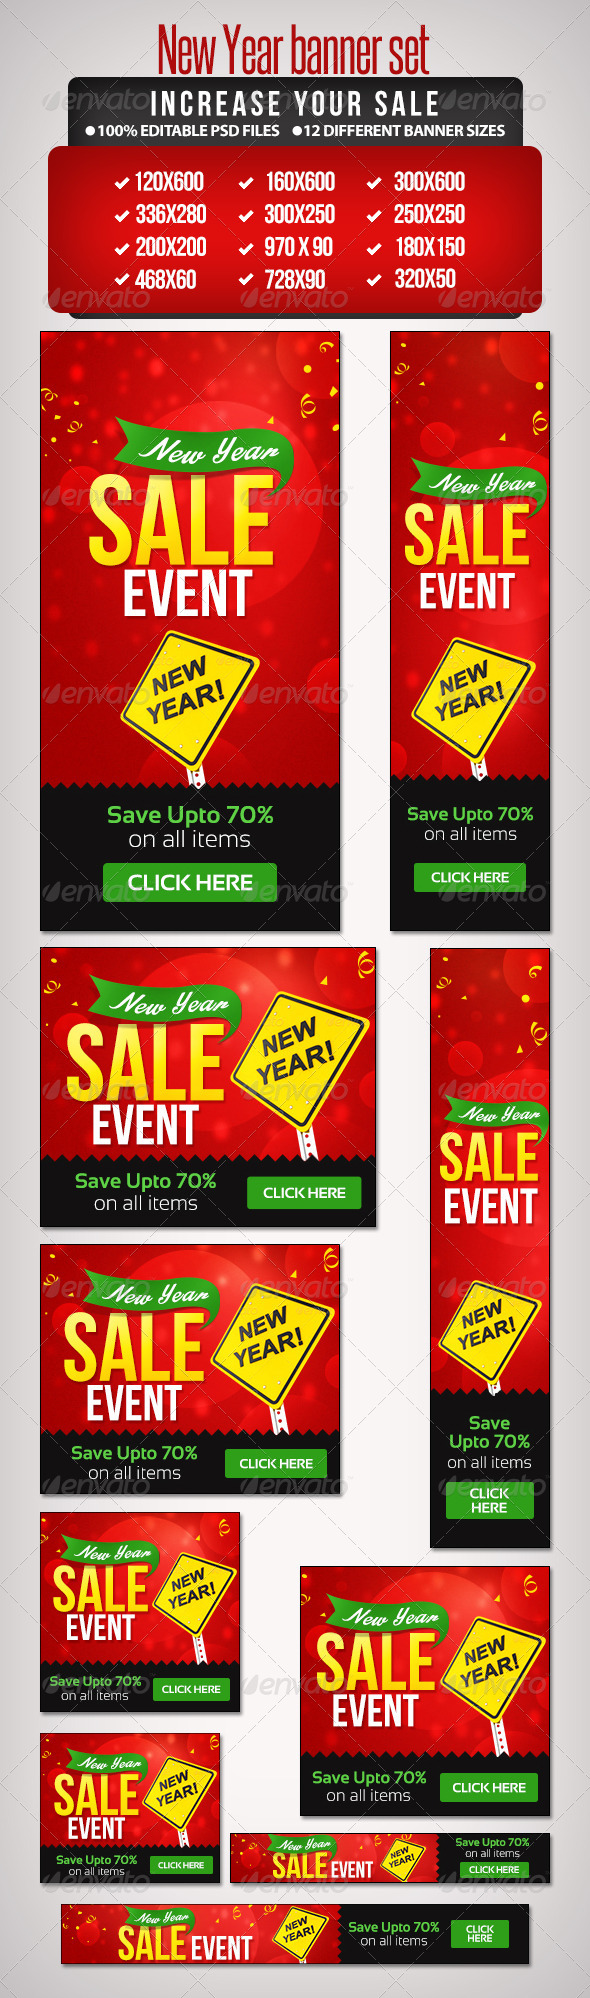 New Year Sales Banner Set 2 - 12 Sizes - Banners & Ads Web Elements